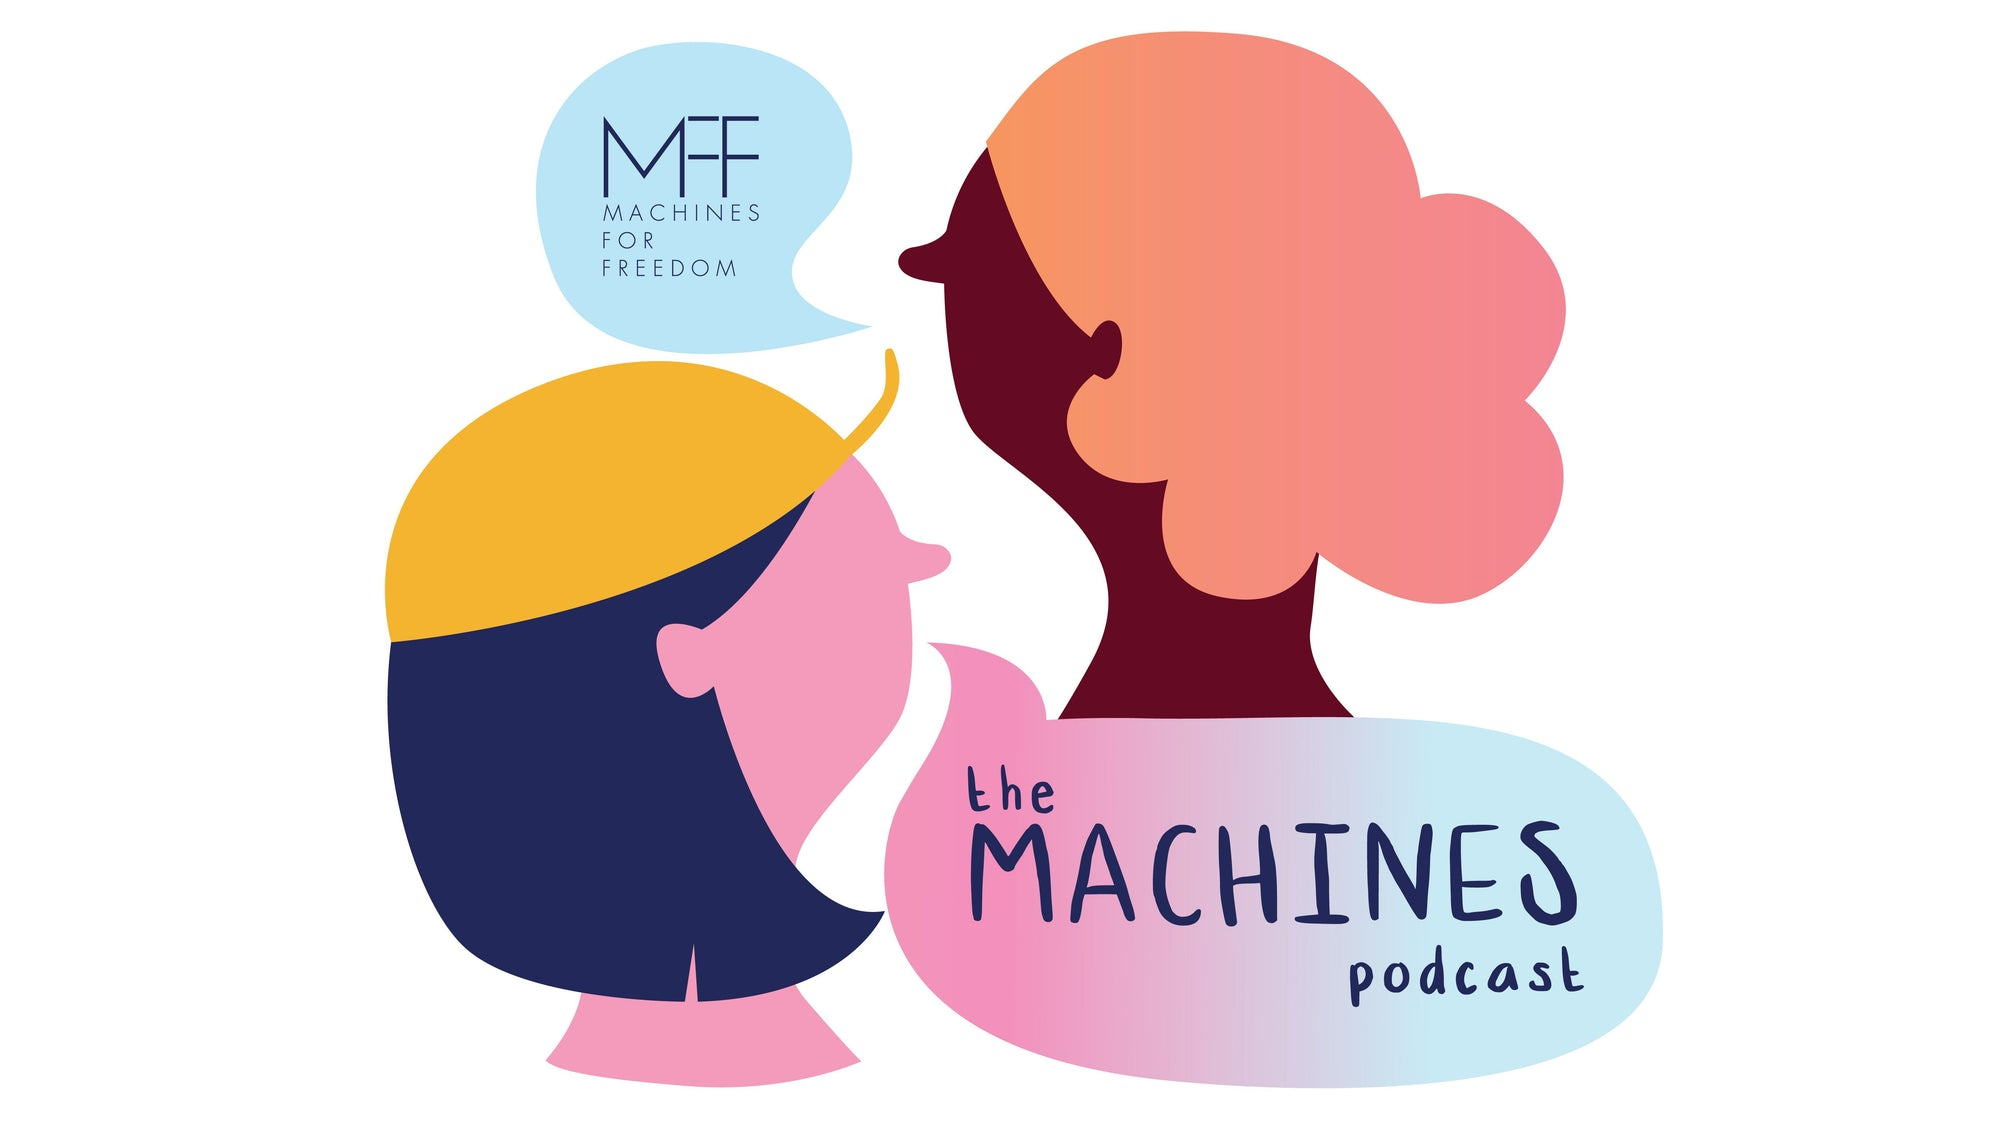 THE MACHINES PODCAST